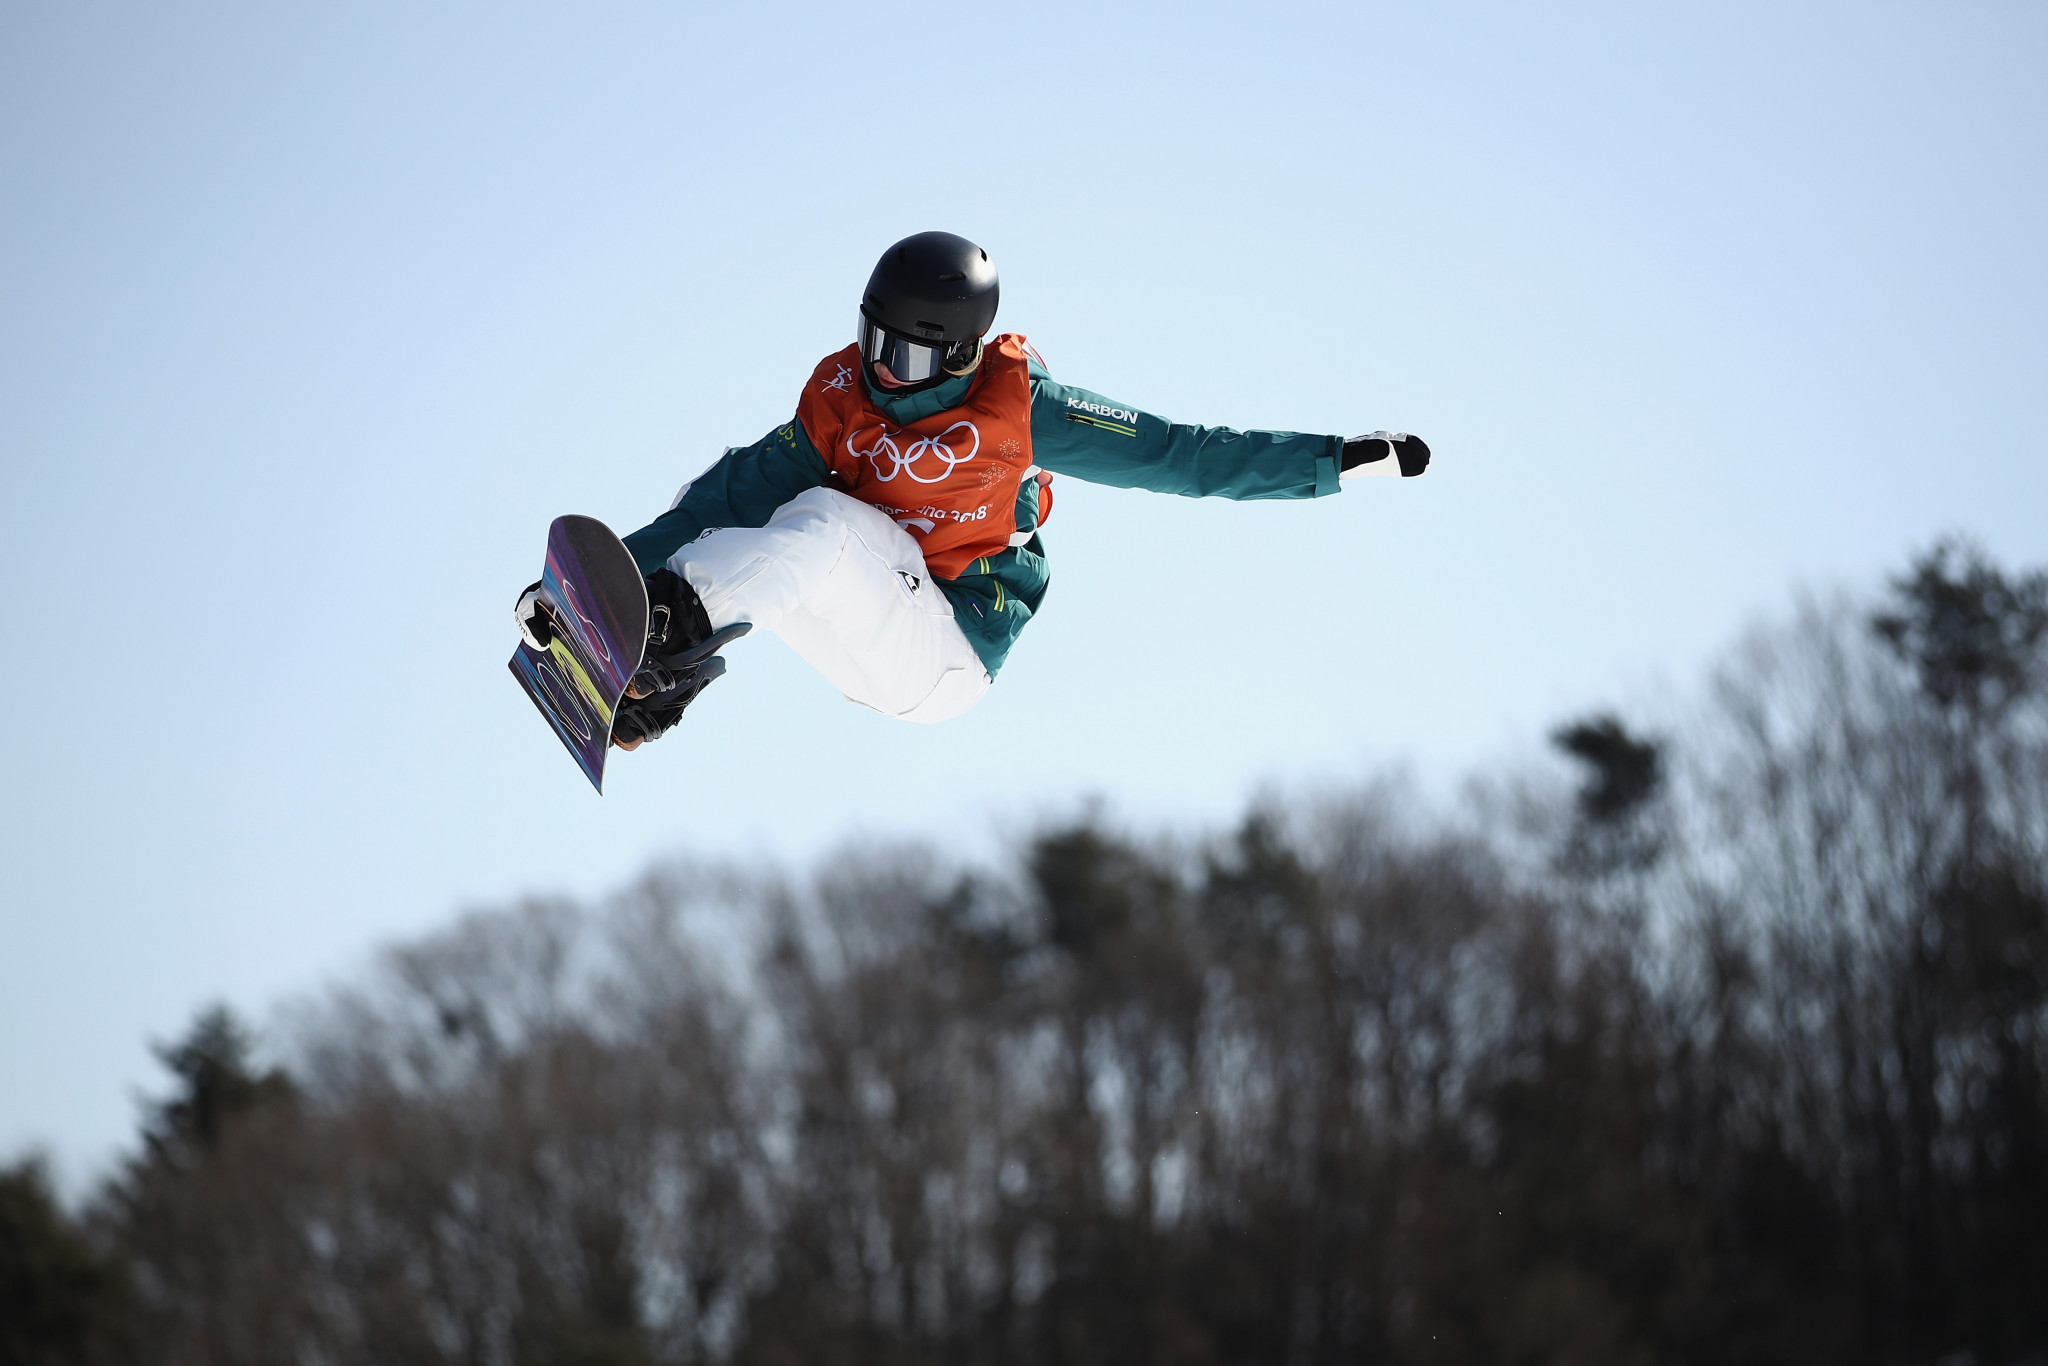 Australia's Tess Coady outshone her rivals in the women's slopestyle event ©Getty Images